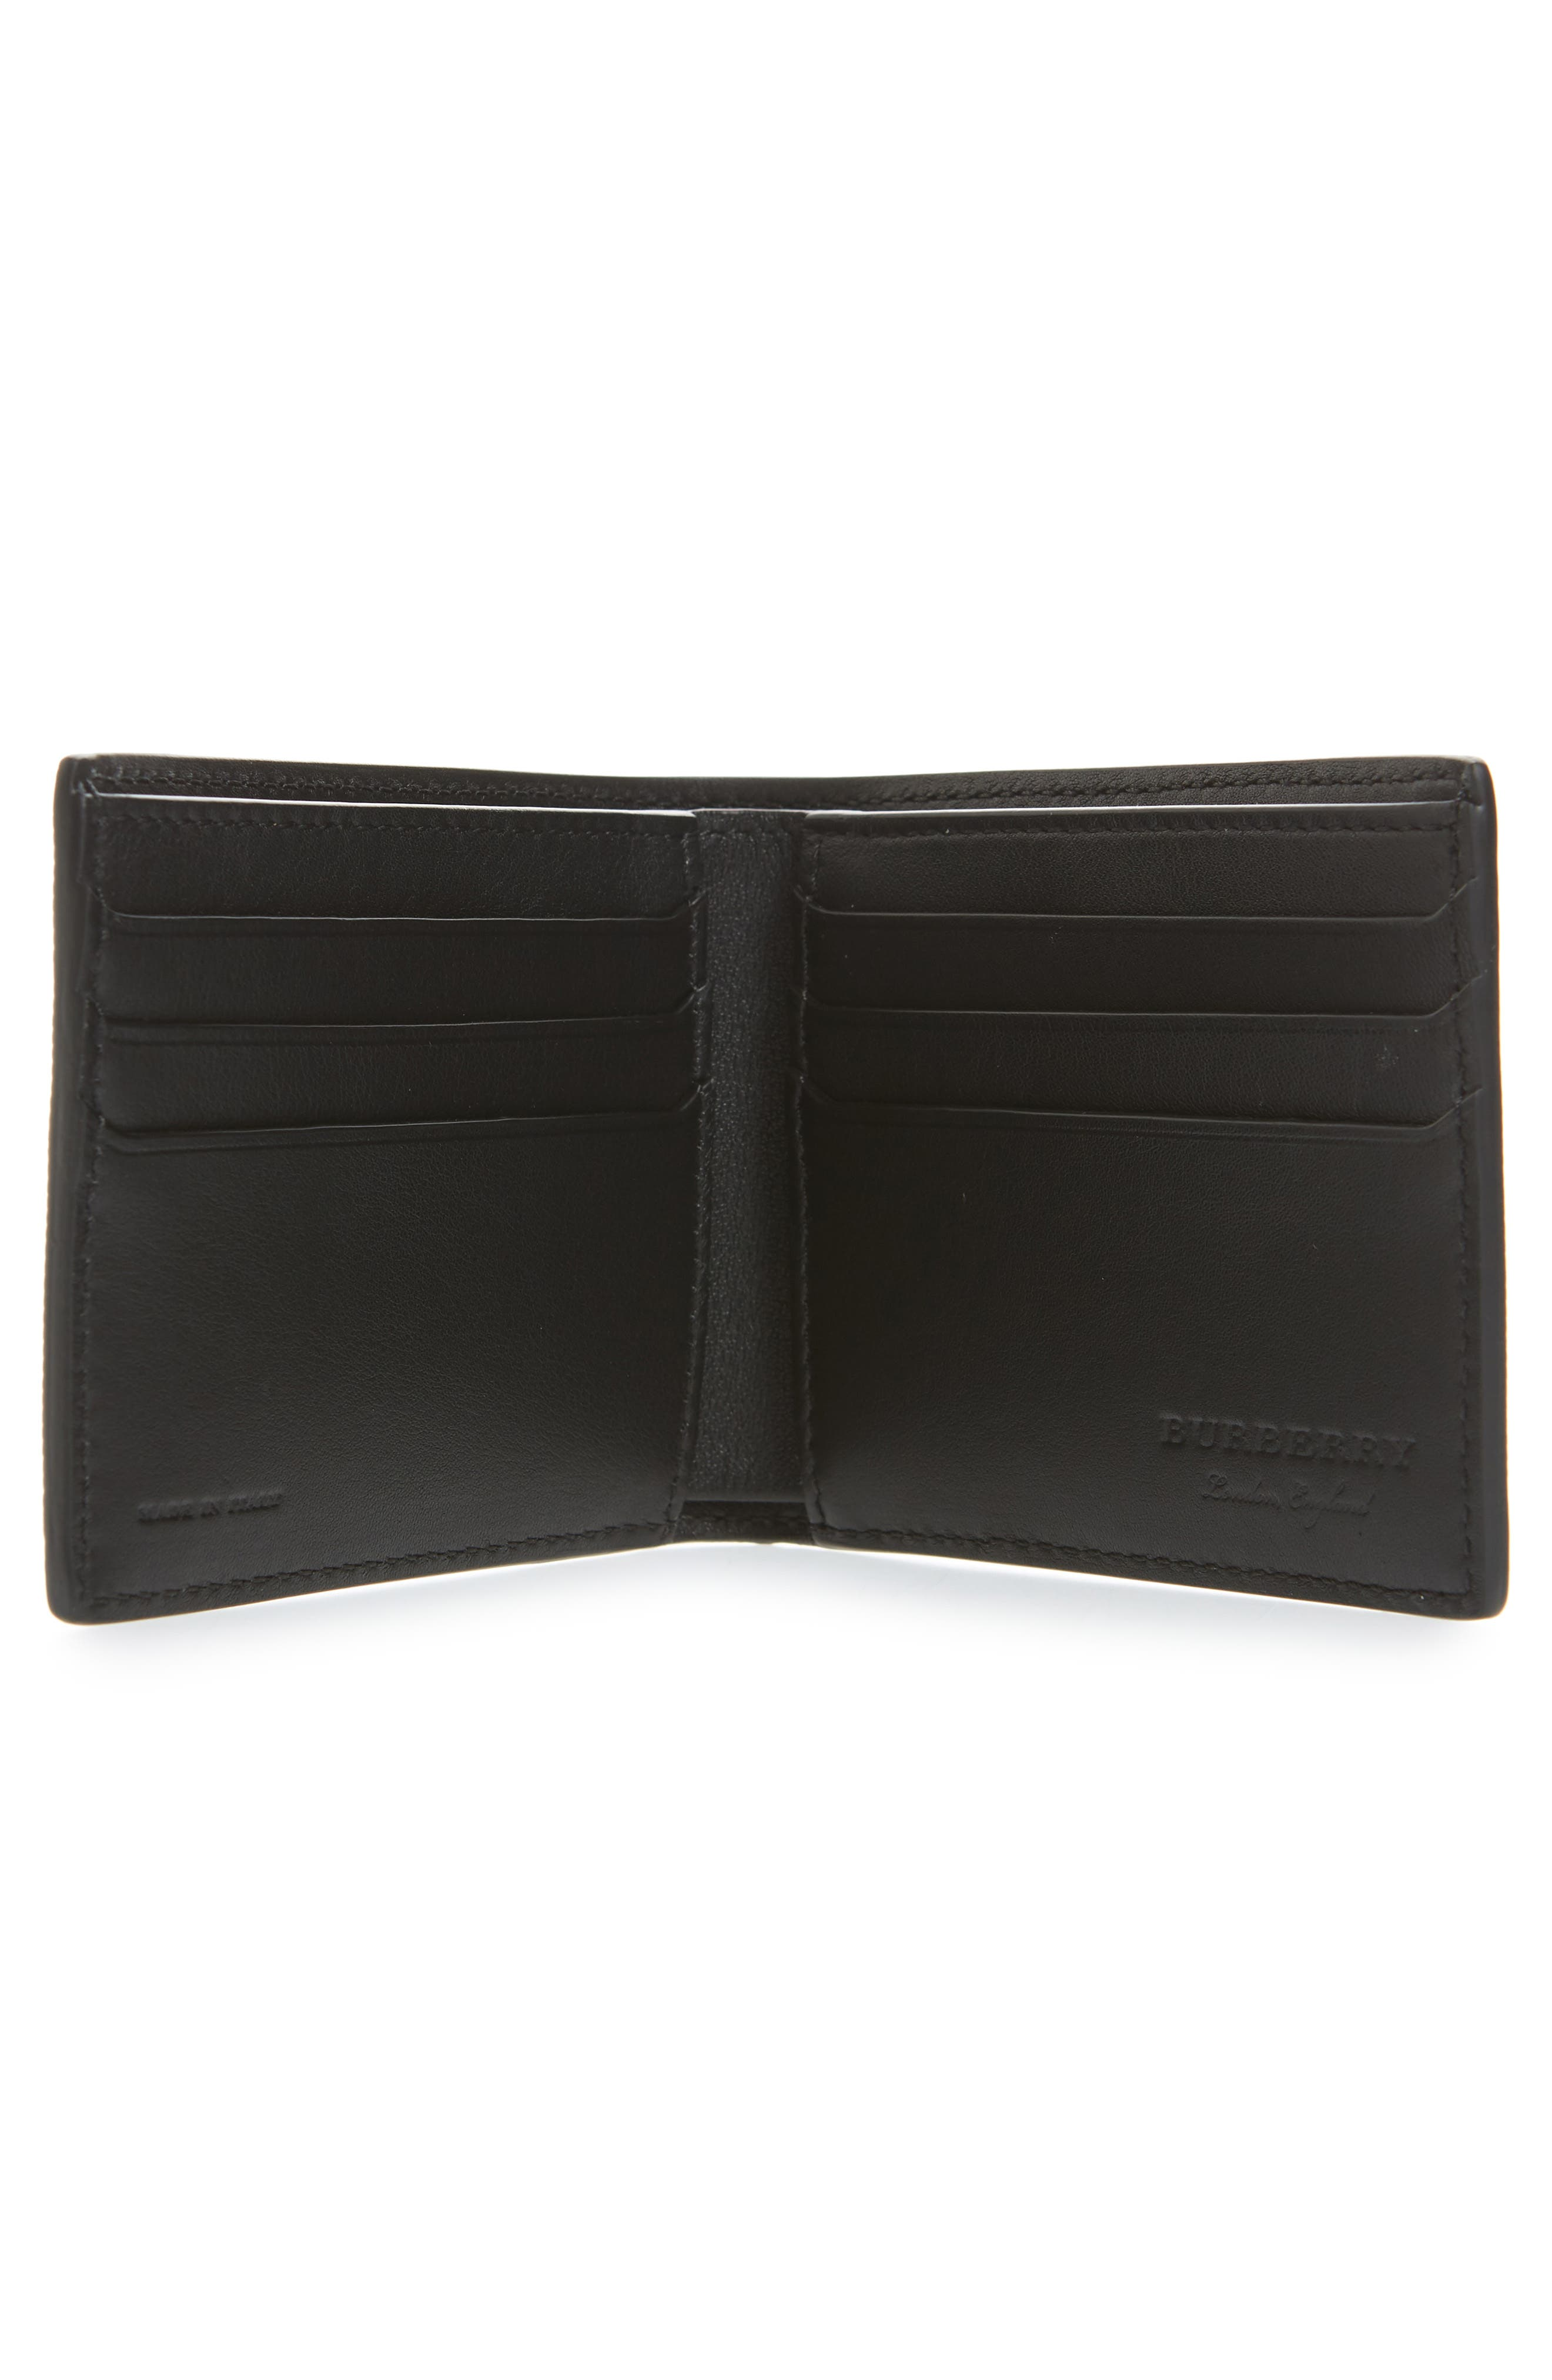 Trench Splash Leather Wallet,                             Alternate thumbnail 3, color,